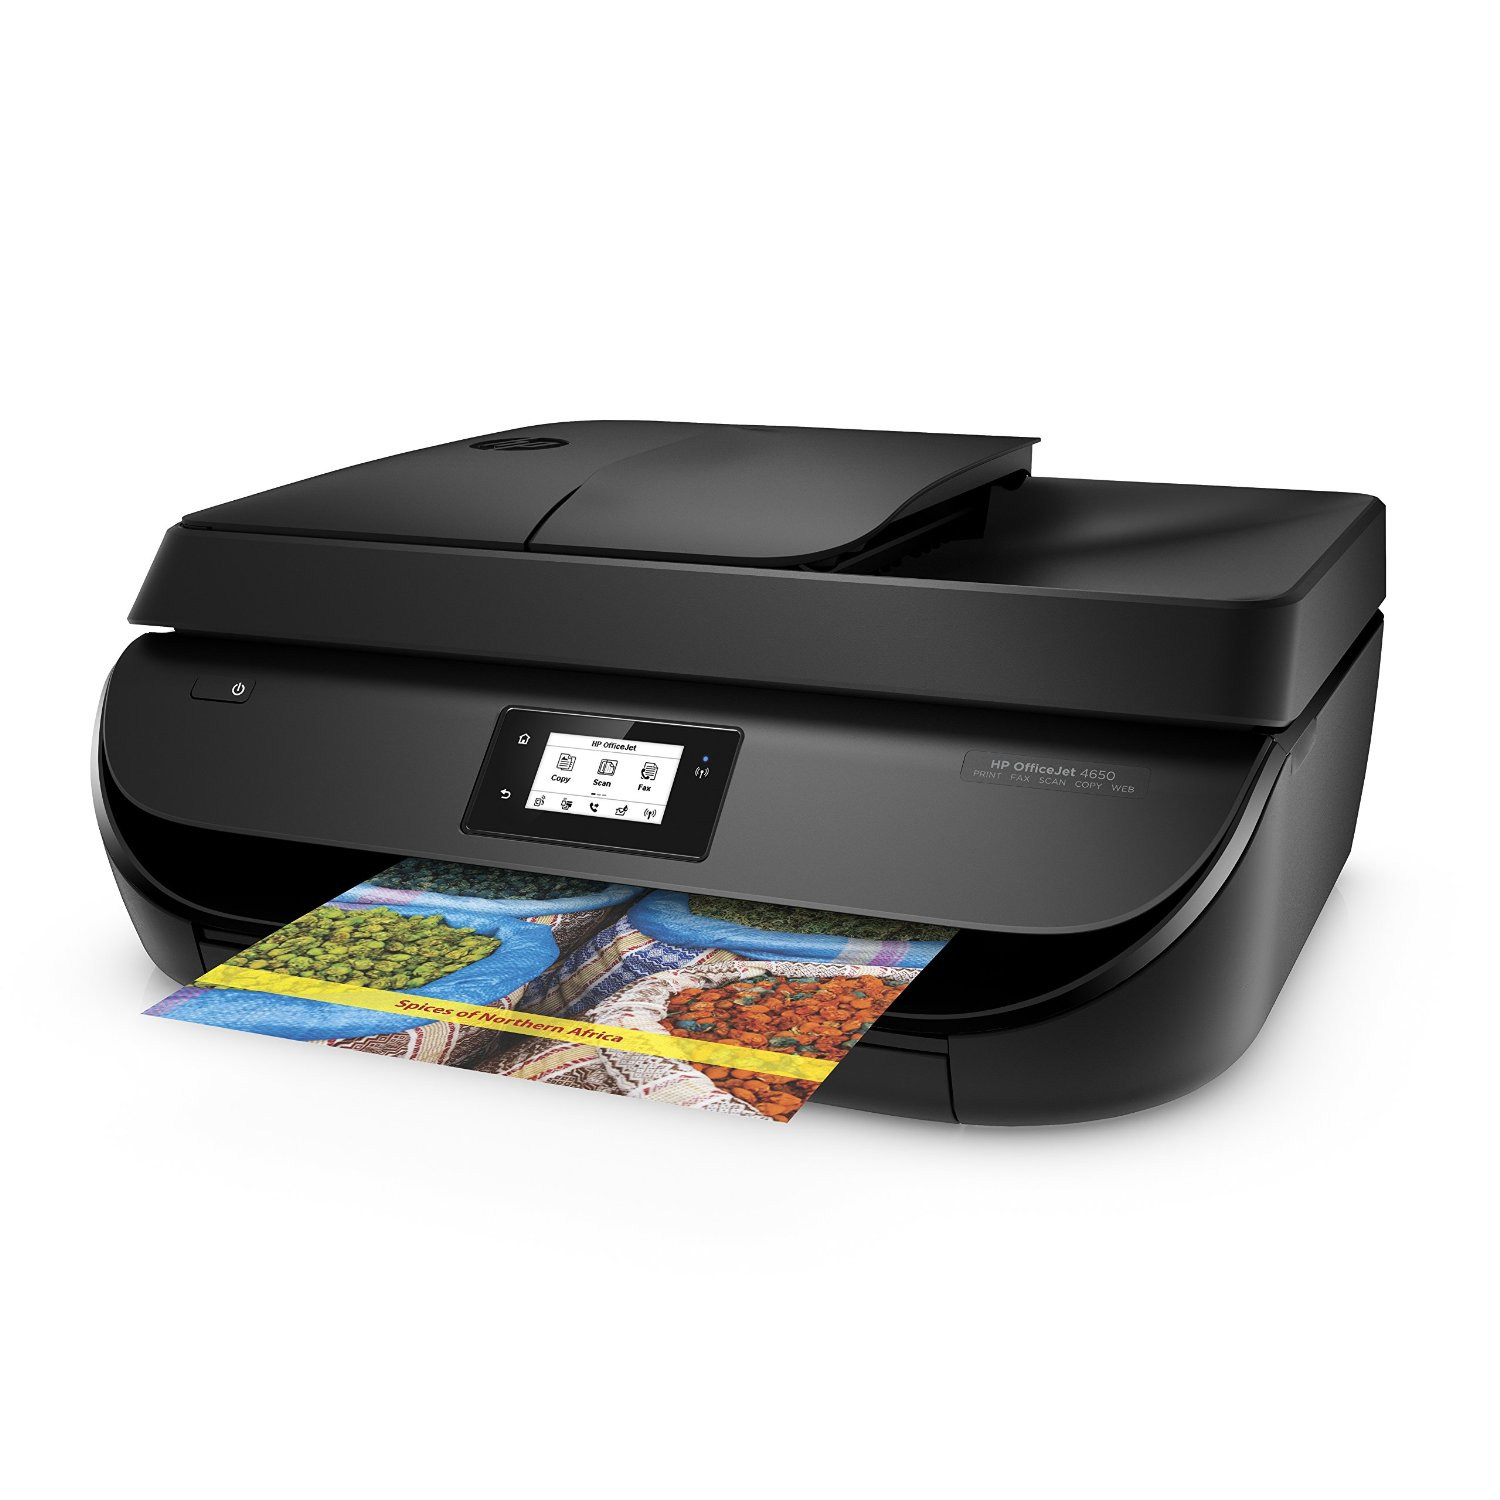 HP Officejet 4650 Wireless All-in-One Inkjet Printer